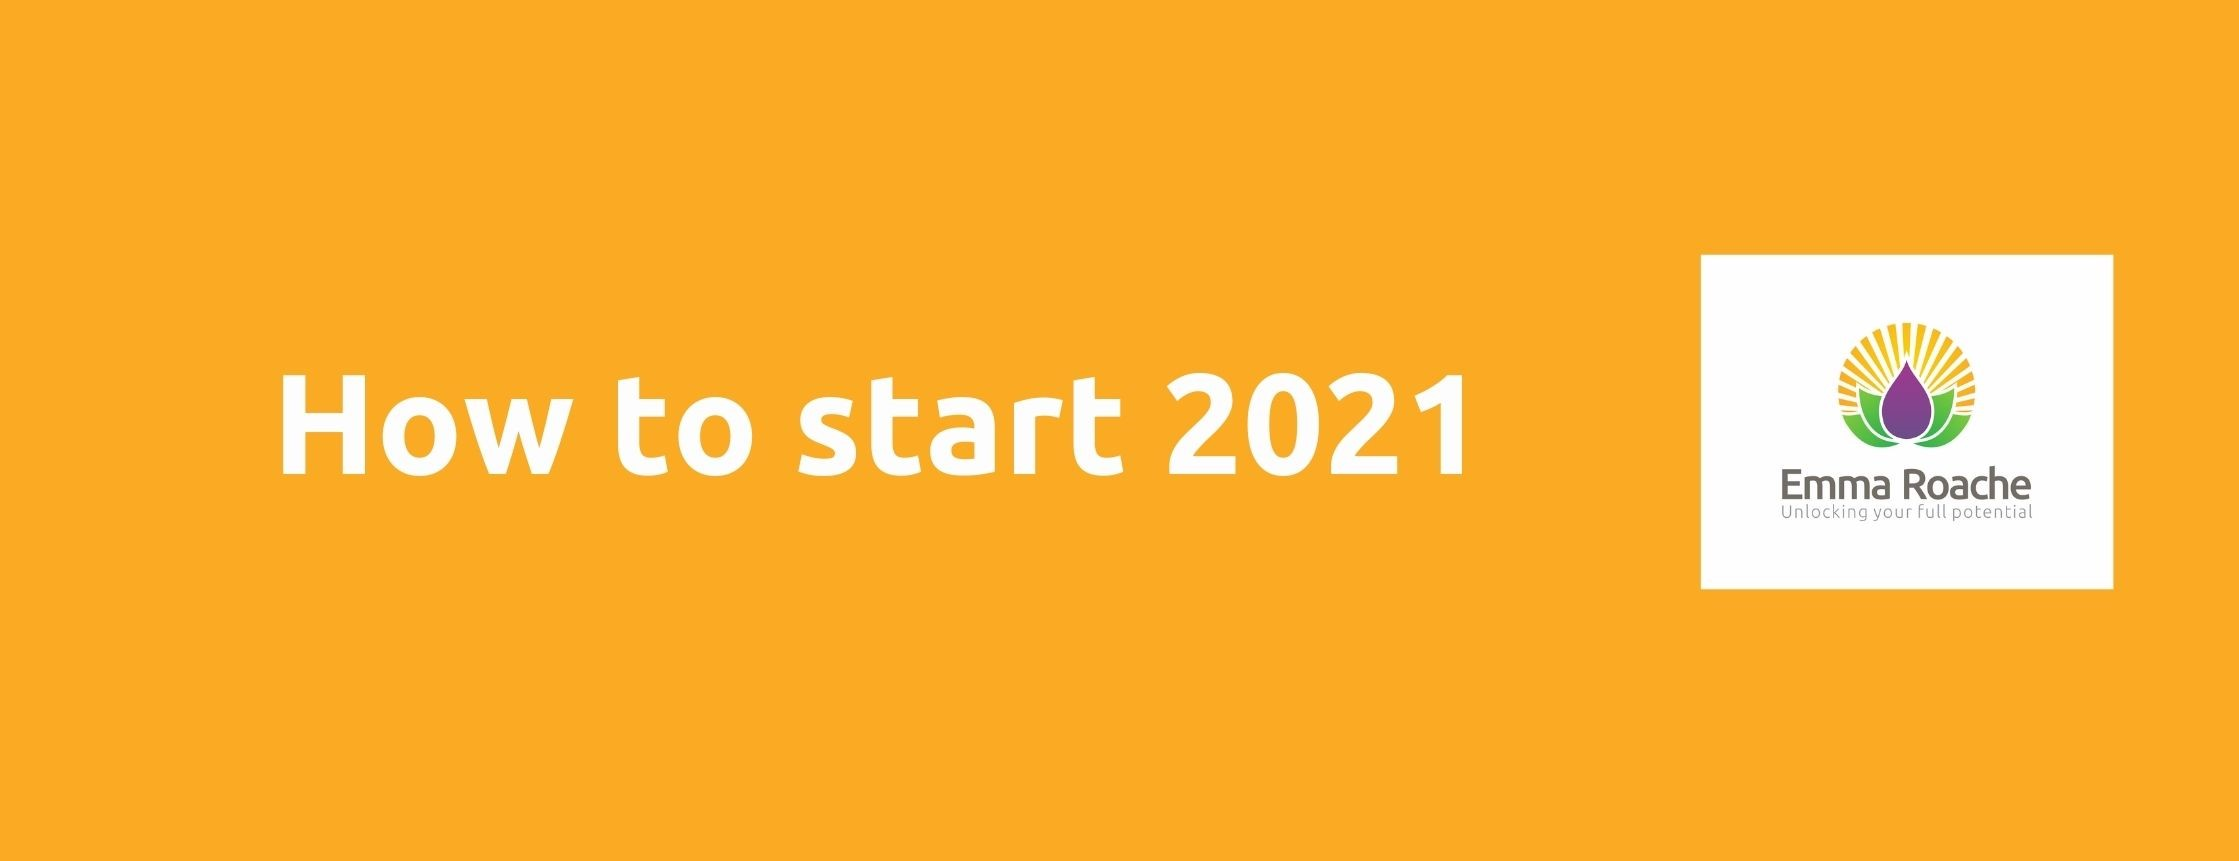 How to start 2021